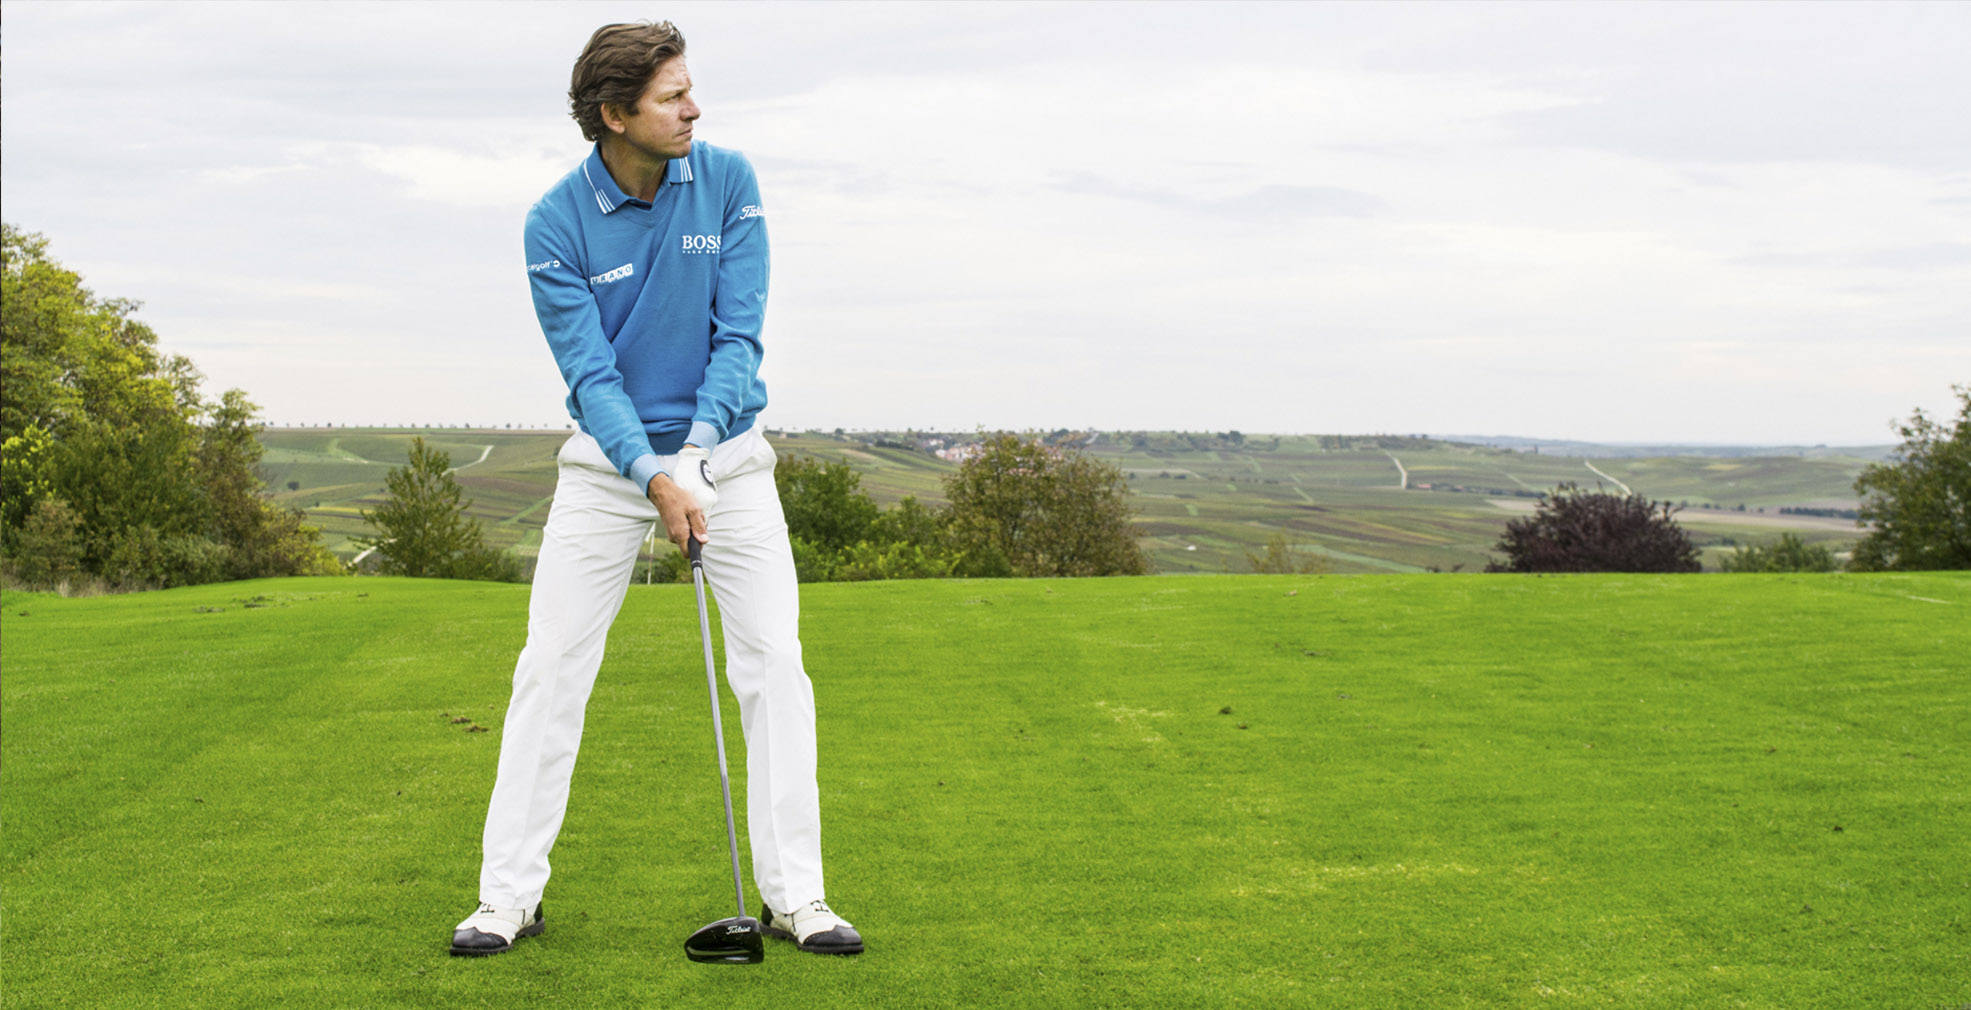 ... golf as a life style